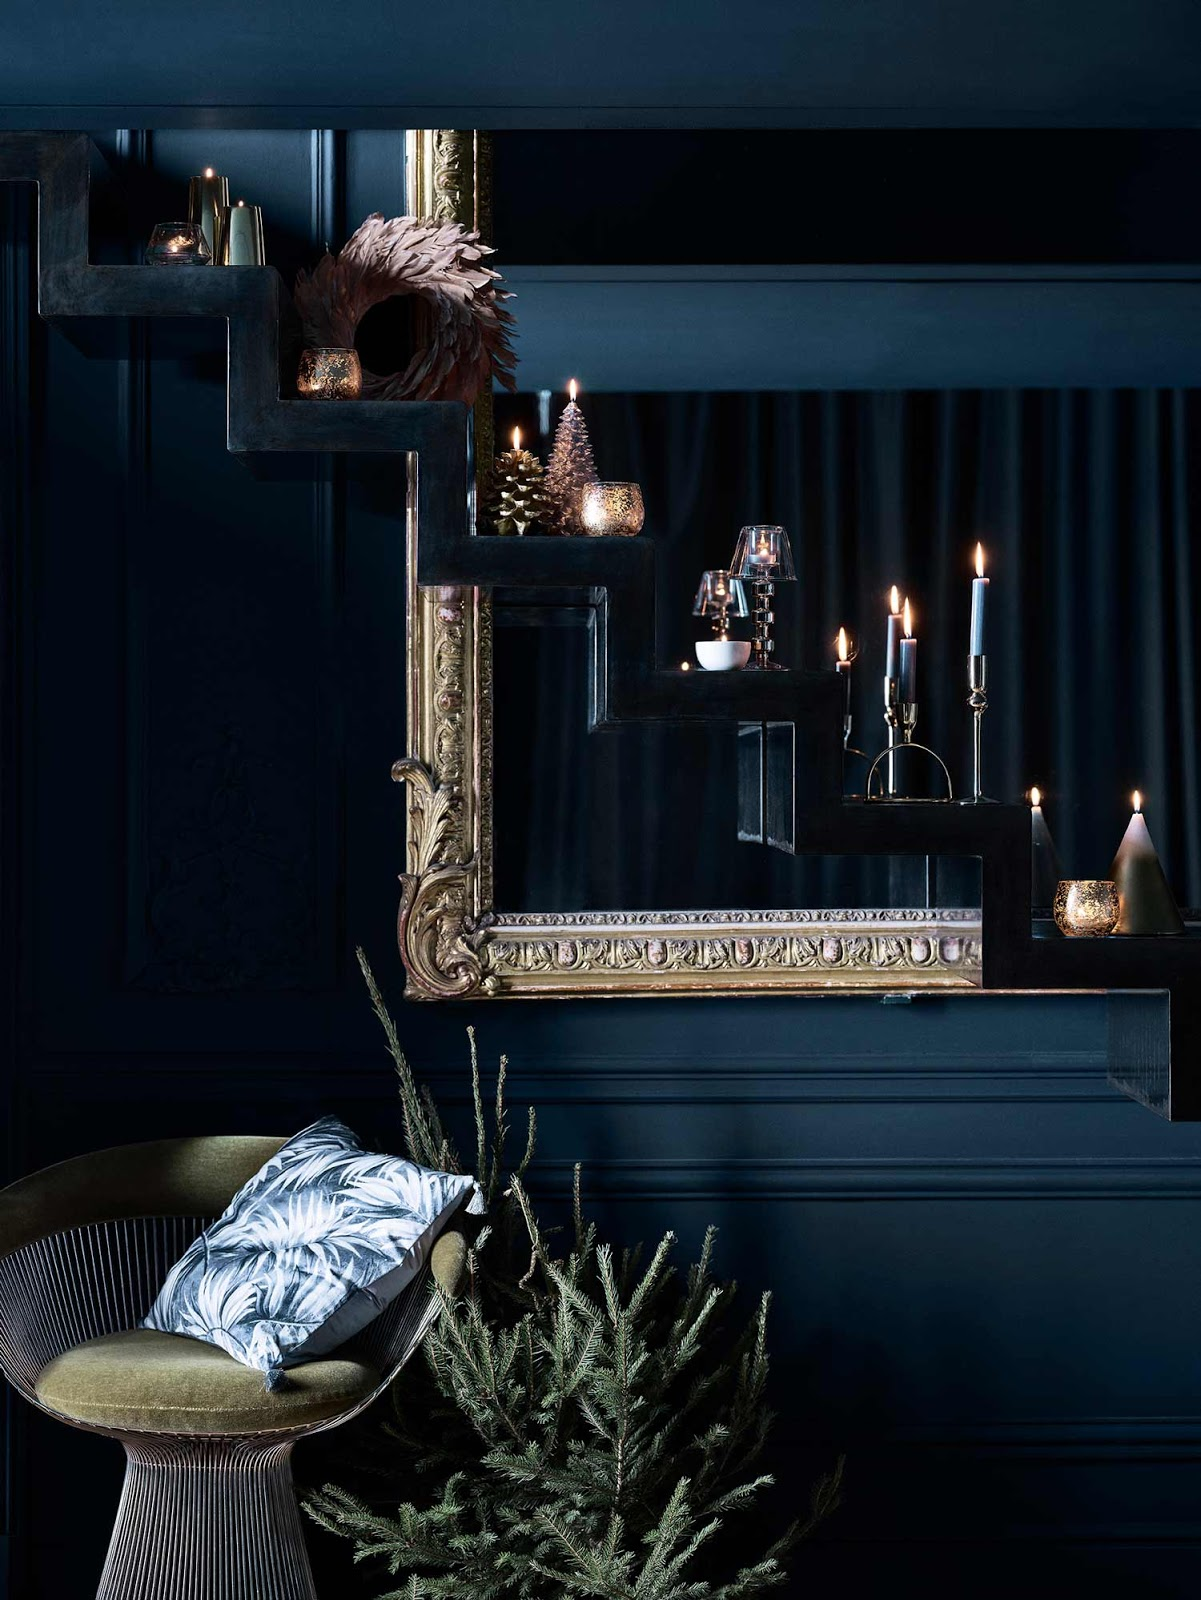 Midnight Blue La Collezione Di Natale Di Zara Home Coffee Break The Italian Way Of Design